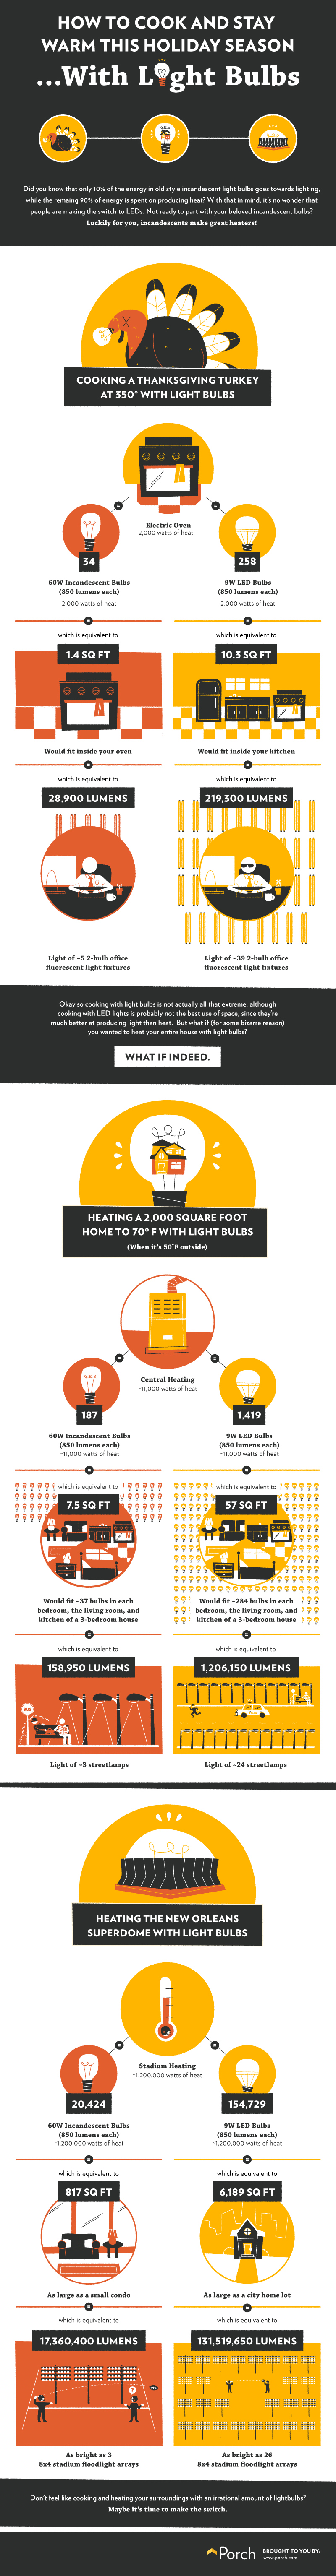 How to Cook & Stay Warm With Light Bulbs